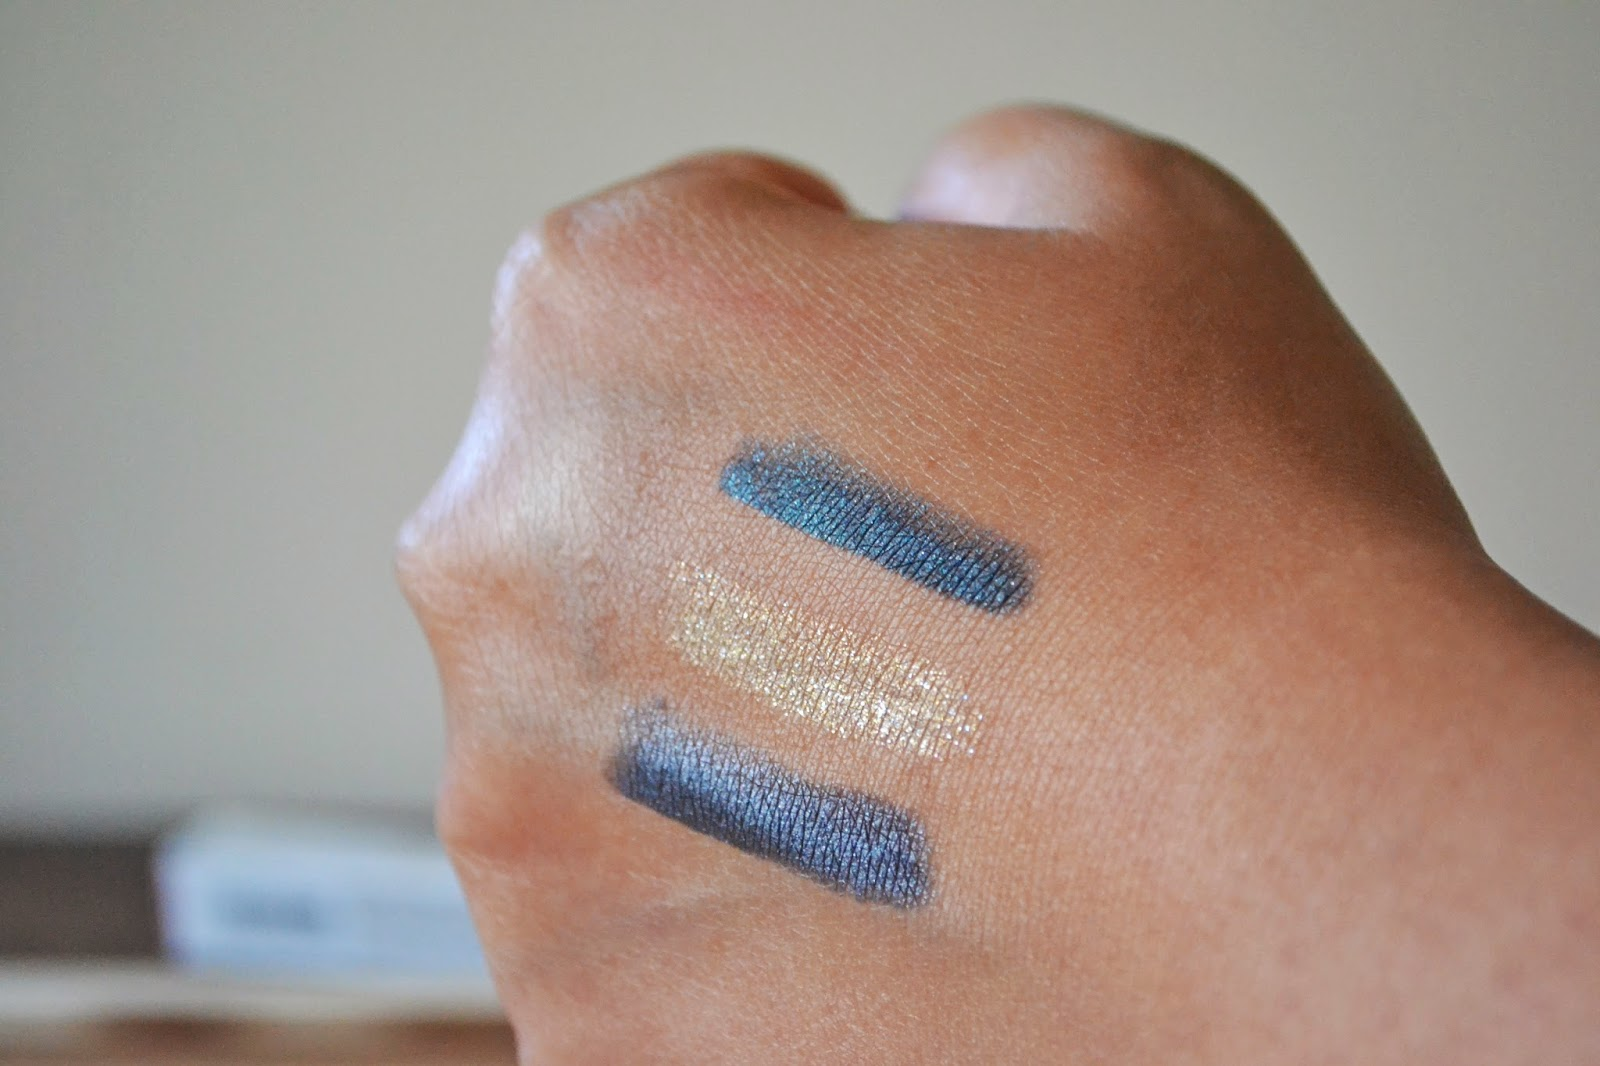 Kiko Milano Color-Up Long Lasting Eyeshadow Pencil Swatches in 28 Persuasive Anthracite, 11 Charming Champagne & 29 Irresistable Teal - Aspiring Londoner